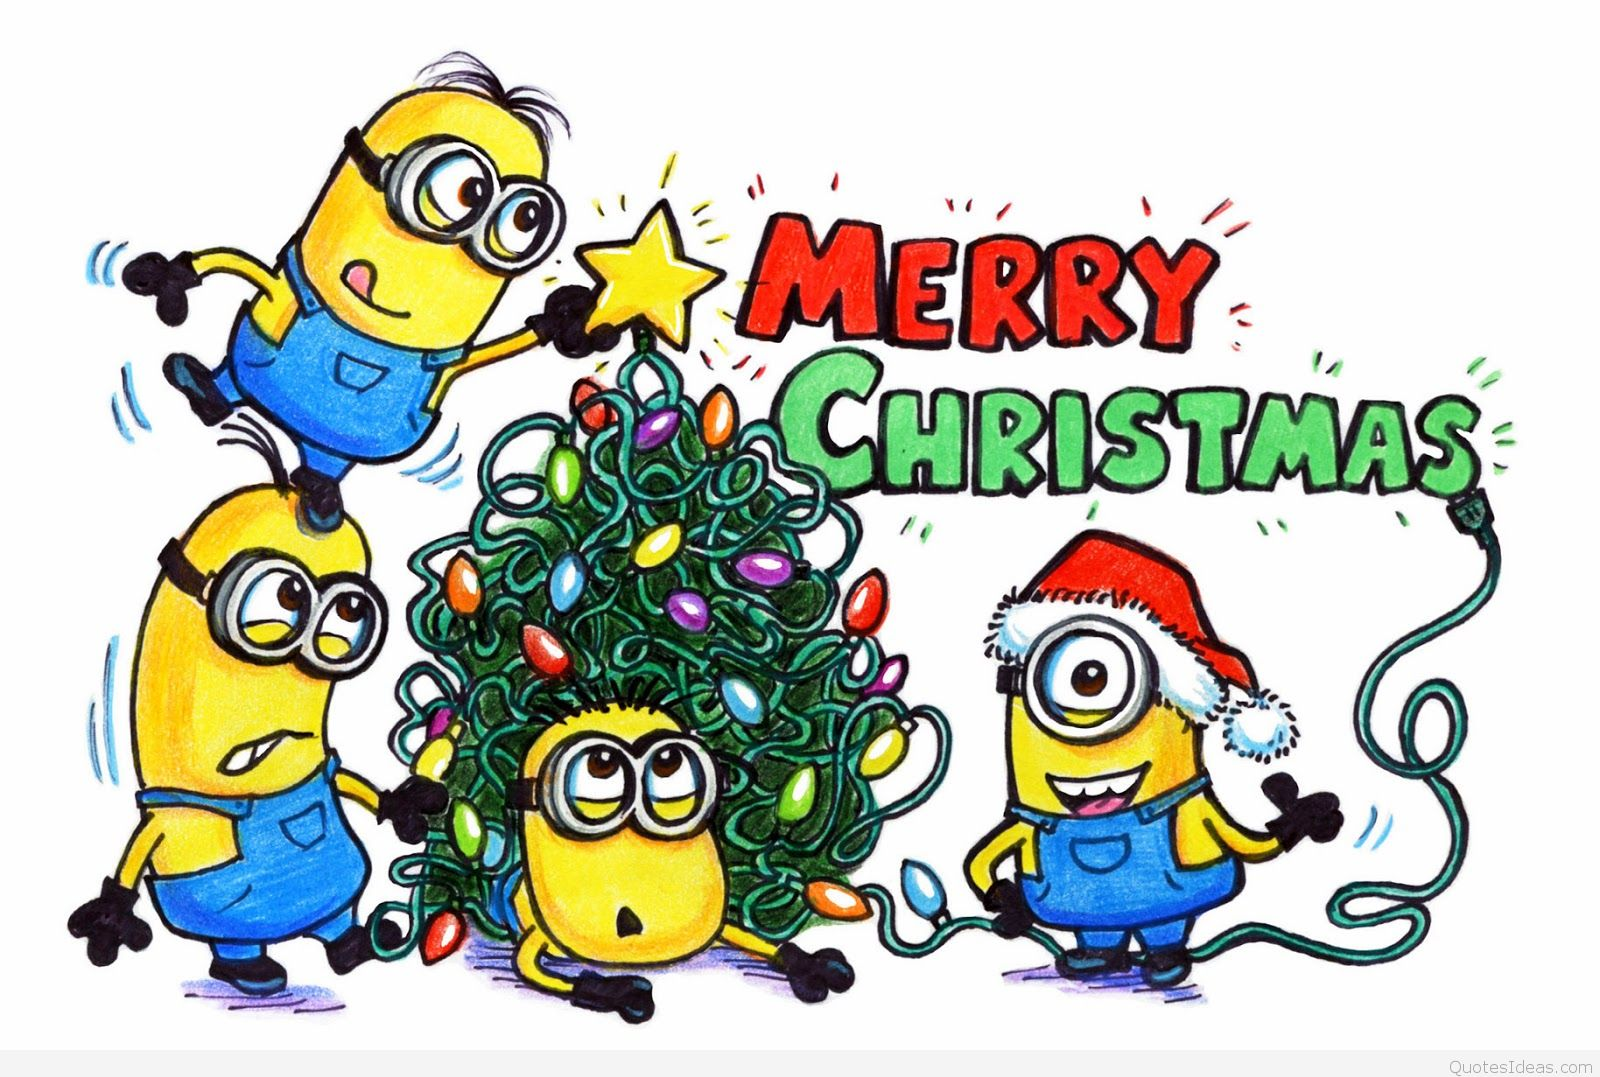 Funny merry christmas clipart image transparent library Merry christmas minions clipart collection - ClipartAndScrap image transparent library